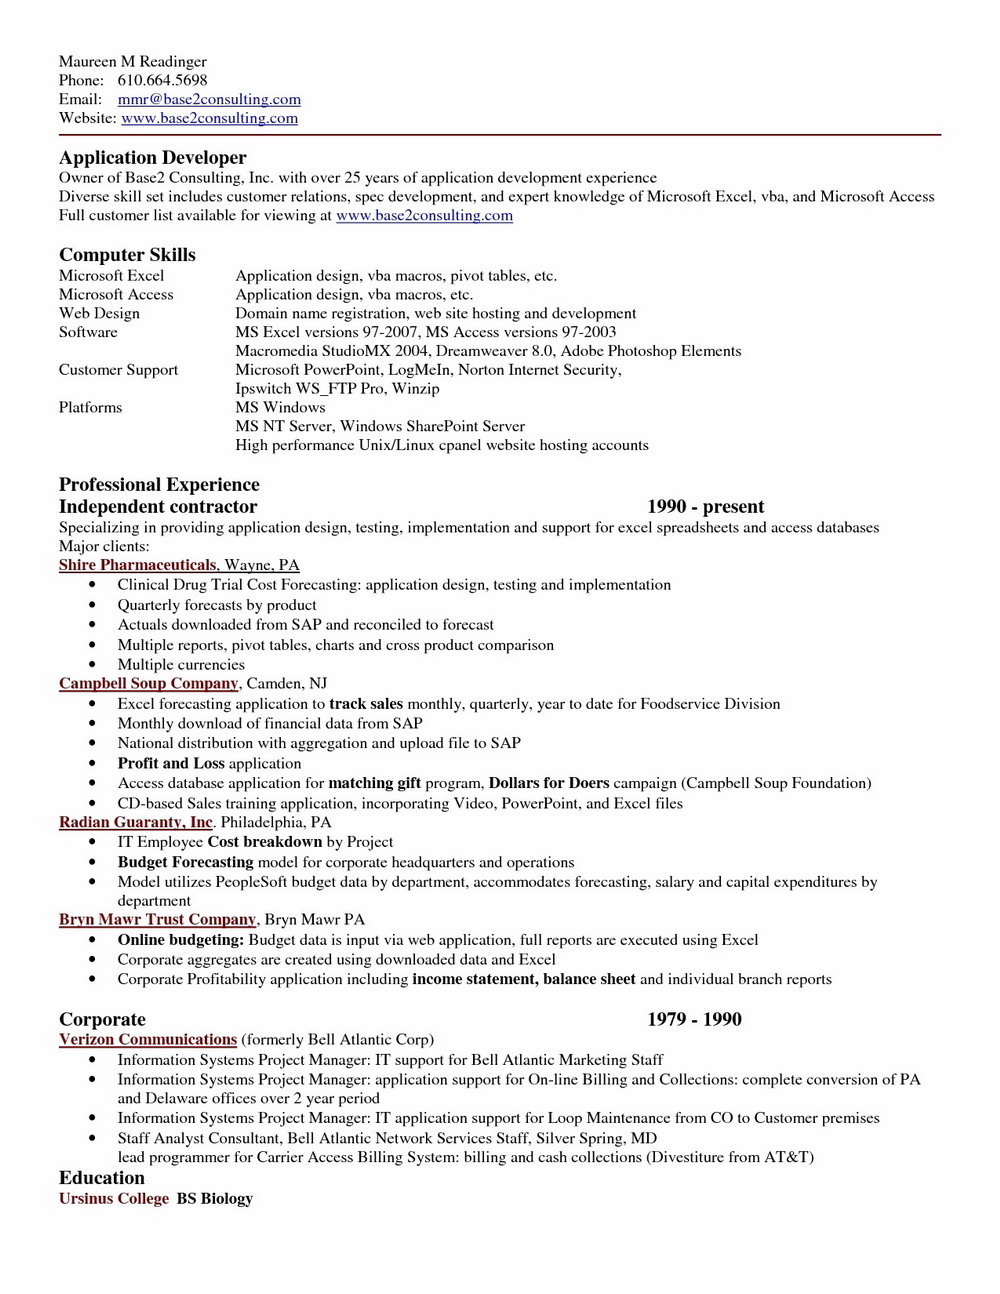 Resume Format For Freshers Free Download In Ms Word